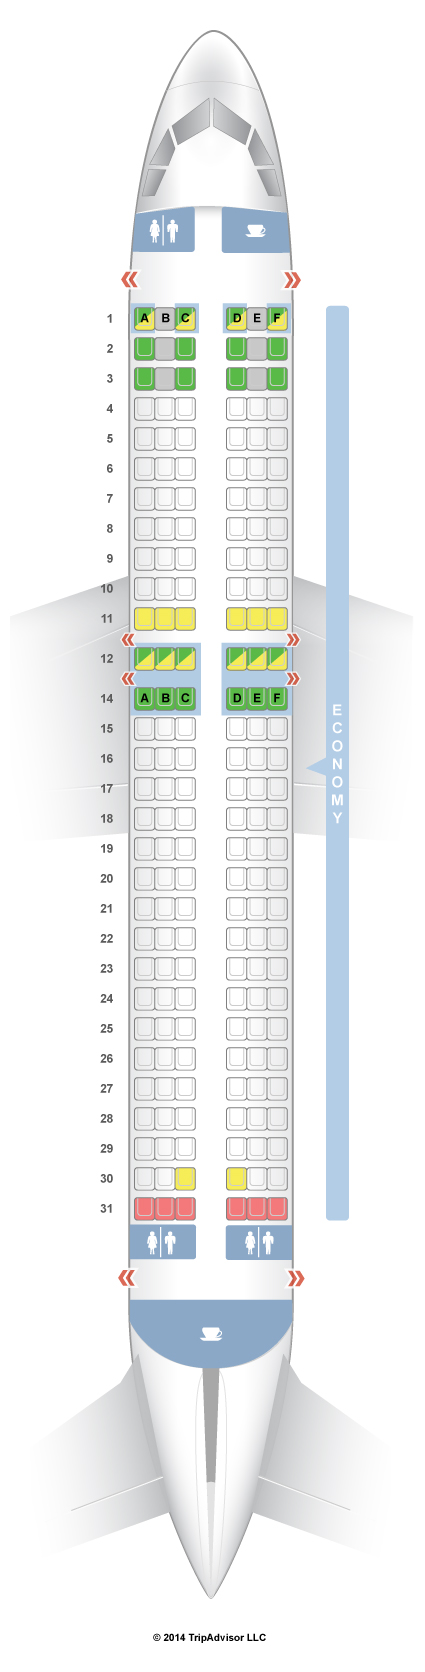 alaska airlines seat selection